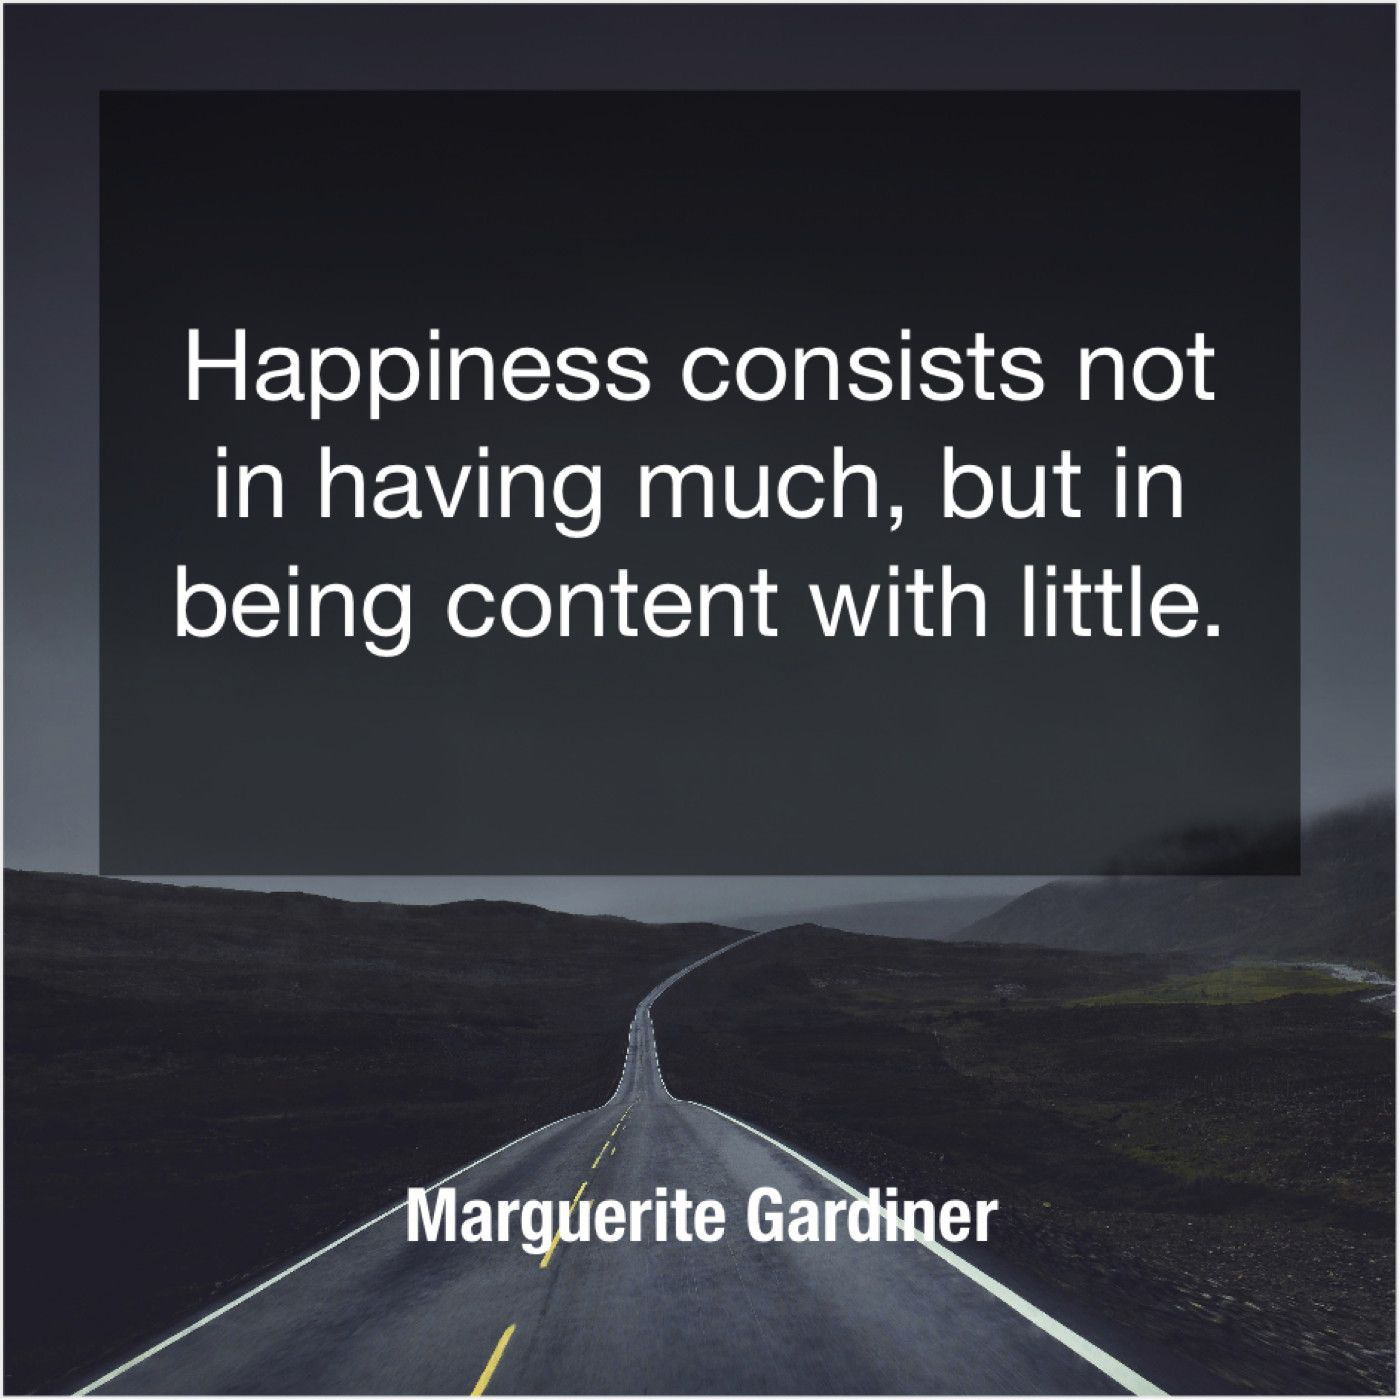 8daac37272d8 Marguerite Gardiner Happiness consists not in having | Famous Quotes ...